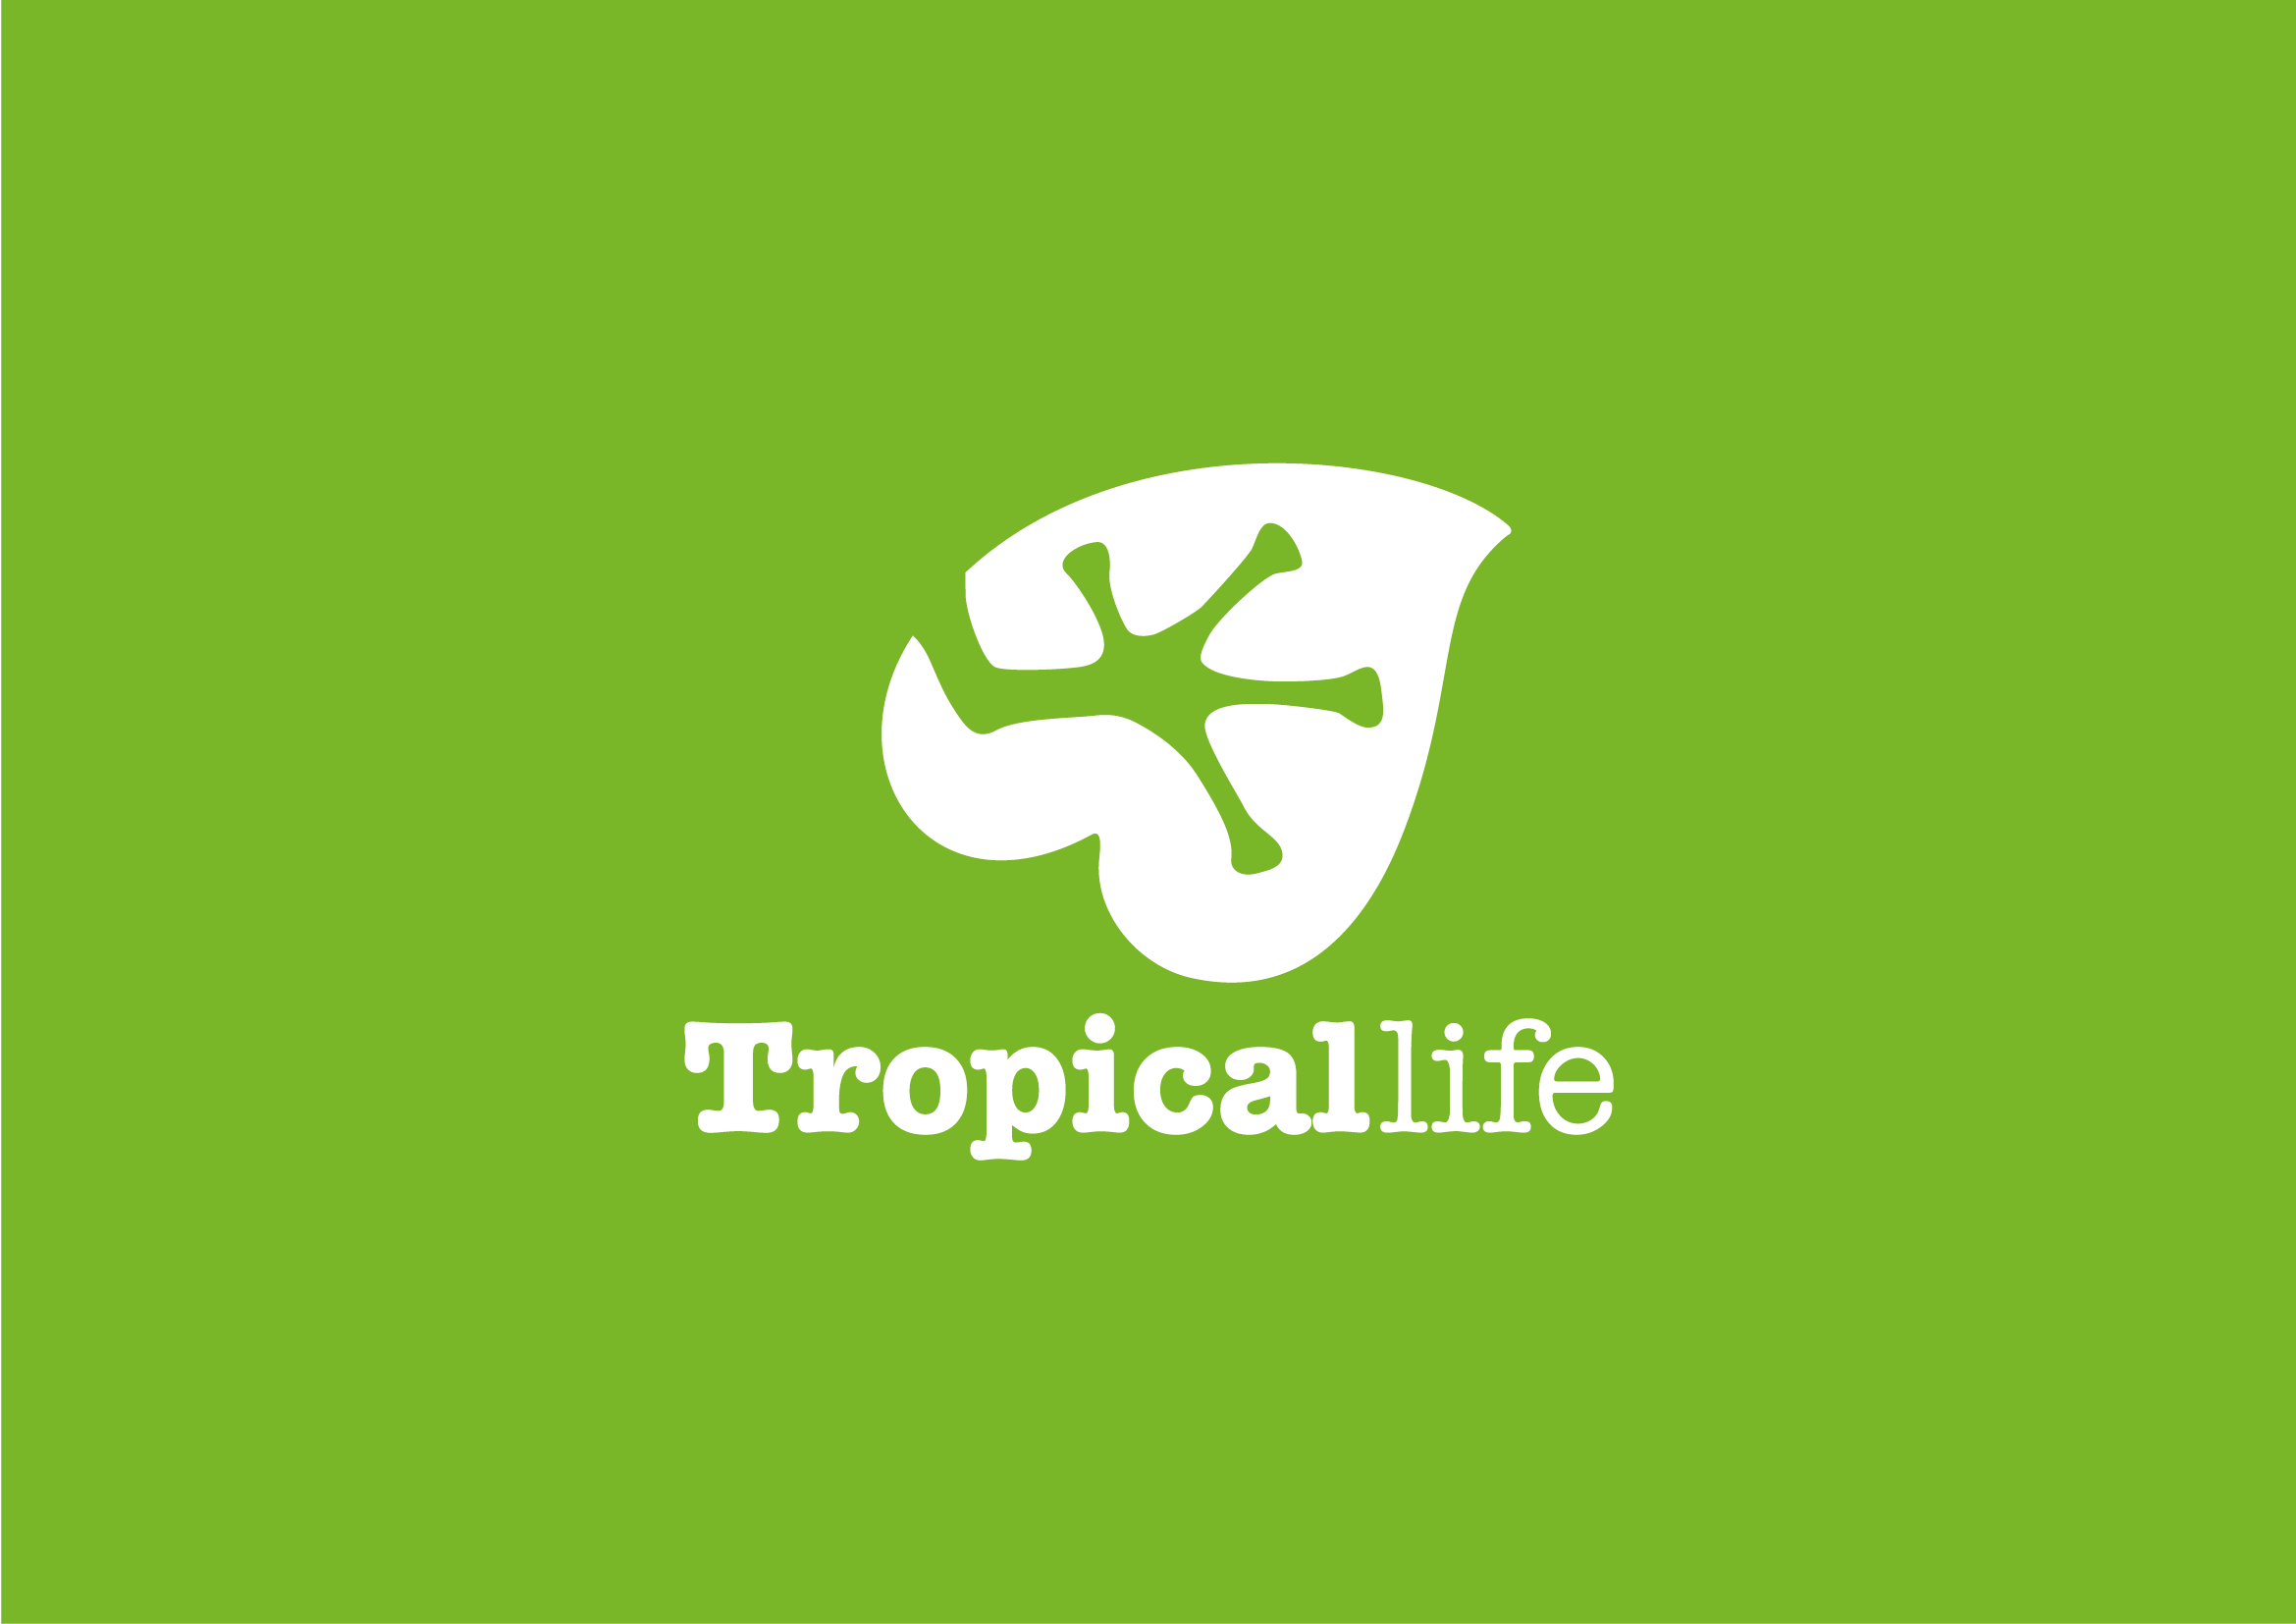 tropicallife-branding-02